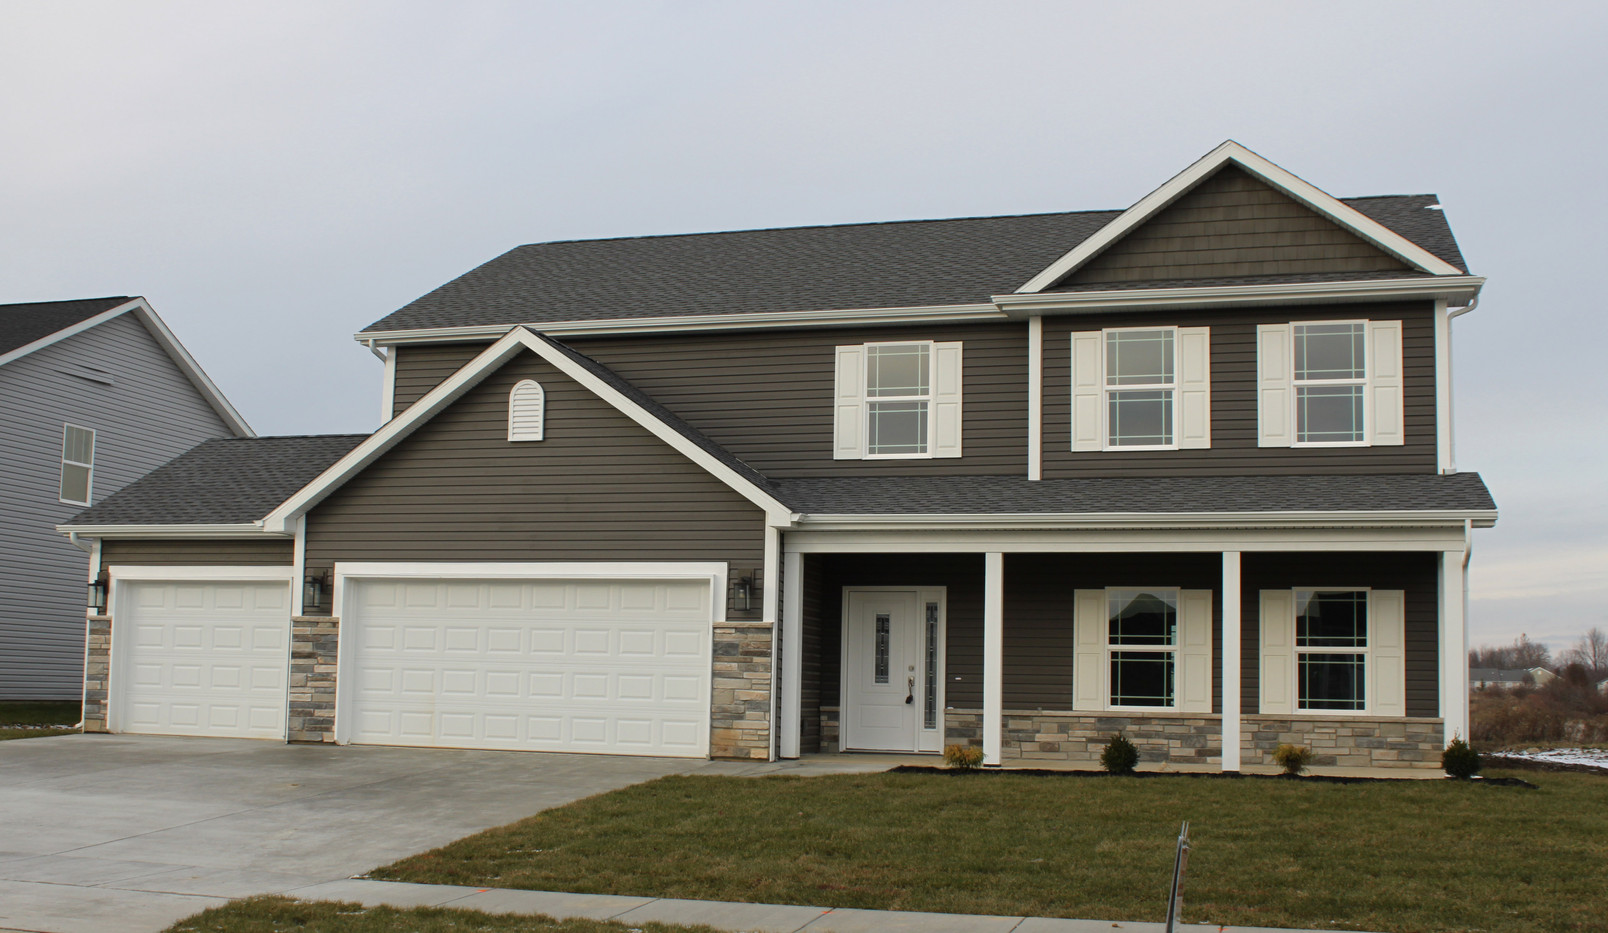 2866 Needletail Dr - West Lafayette